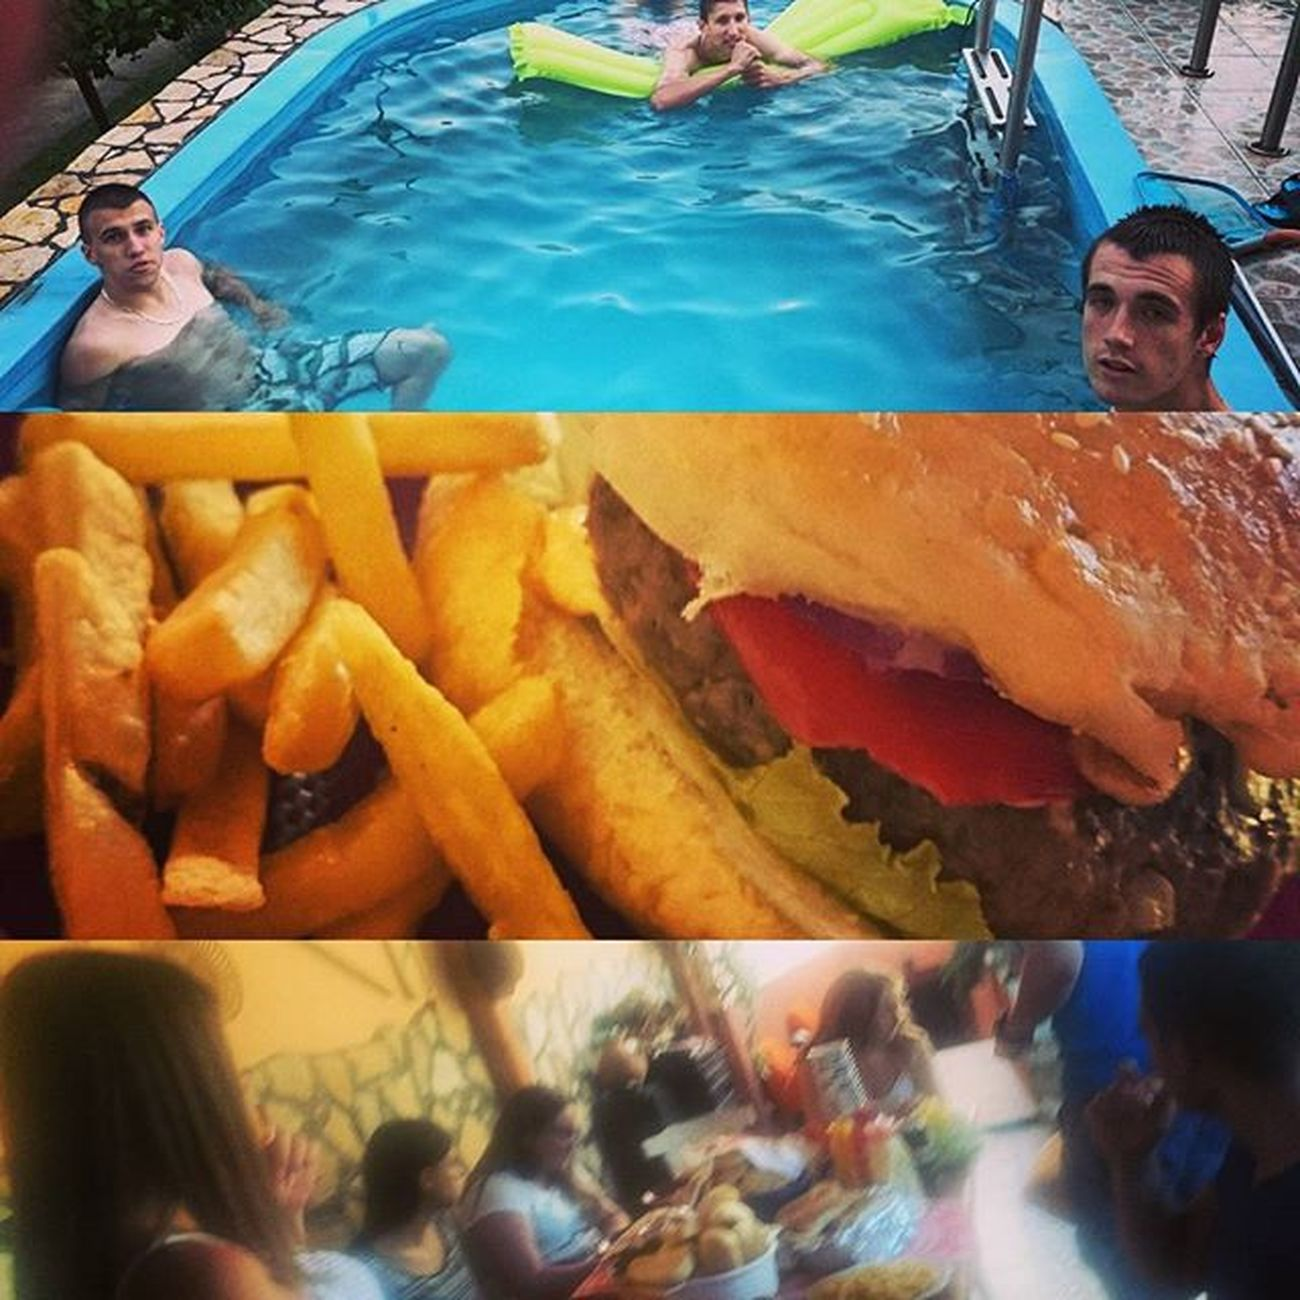 Volt egy hamburgerezés. 🍔 🍟 🍻 🍷 Aztán hangzavar! :-D Latergram Hamburger Frenchfries Food Poolparty Pool Partytime Party Locapeople Crazy Past_memories Past_time Instamemories Instamood Feelgood Instafood Ig Ighun Instagram Juicylucy